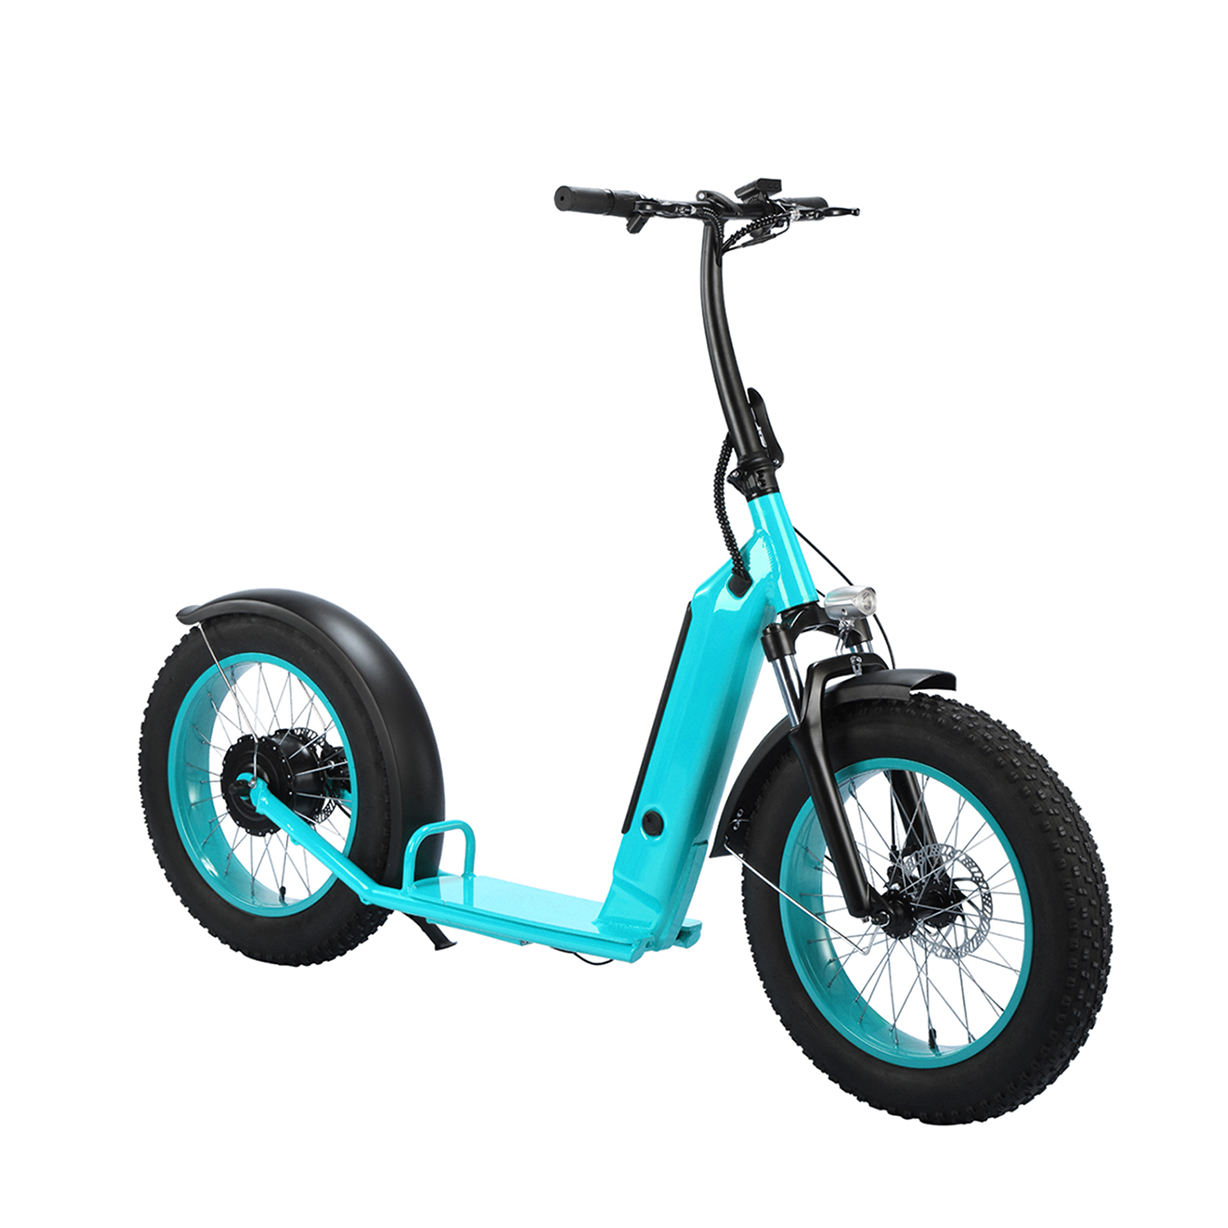 Electric Scooters Suppliers 500W 48V 14Ah Fat Tire E Scooter Big Wheel Electric Scooter Electric Off Road Scooter